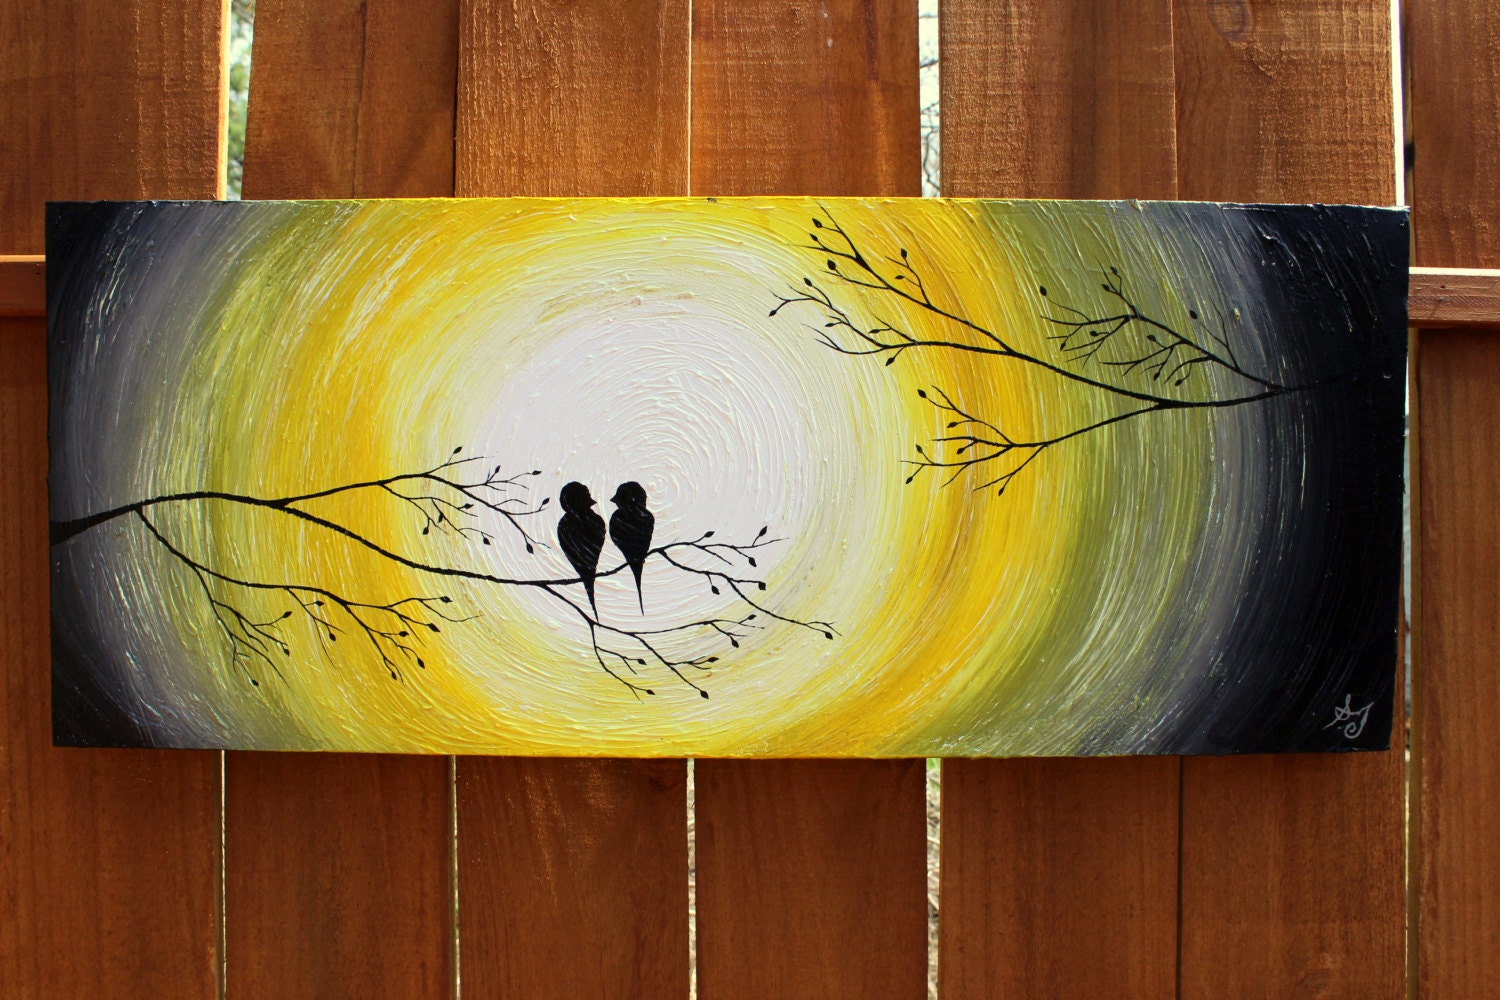 Abstract Painting Ideas Acrylic: Grey And Yellow: Love Birds In The Sunrise/Sunset On A Tree